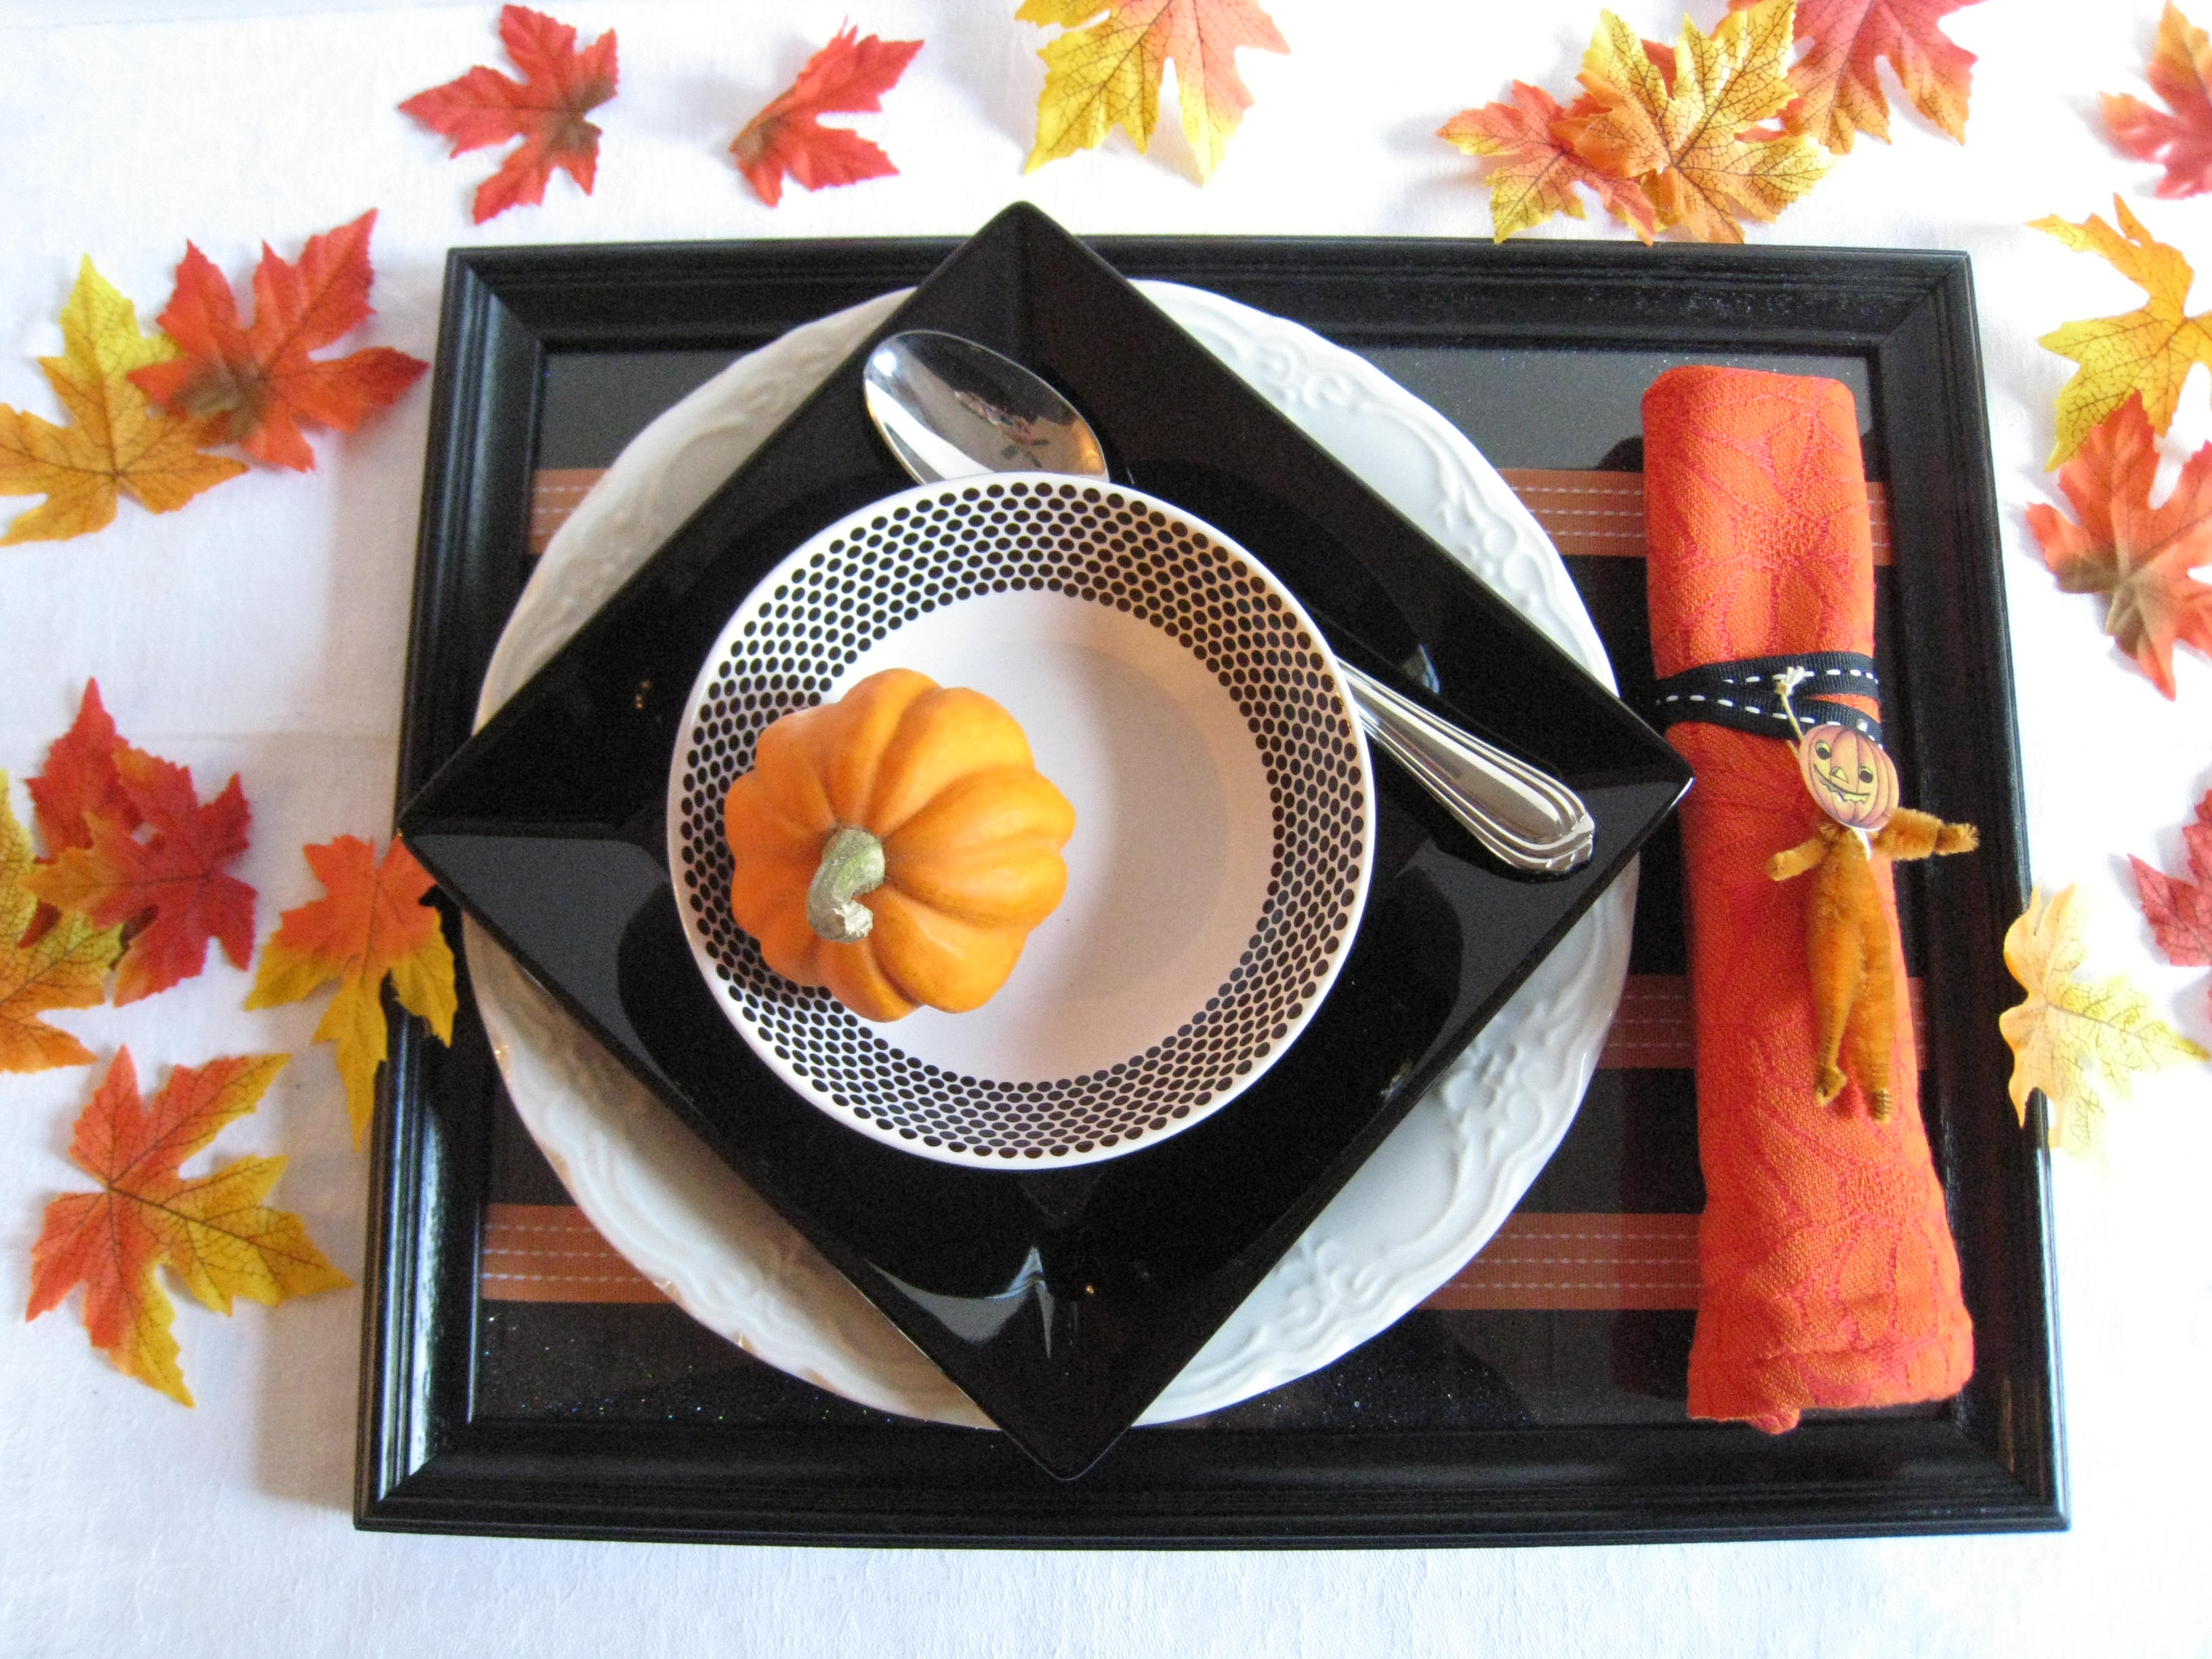 What's black and white and orange all over?  Get in the holiday spirit by setting a festive table.